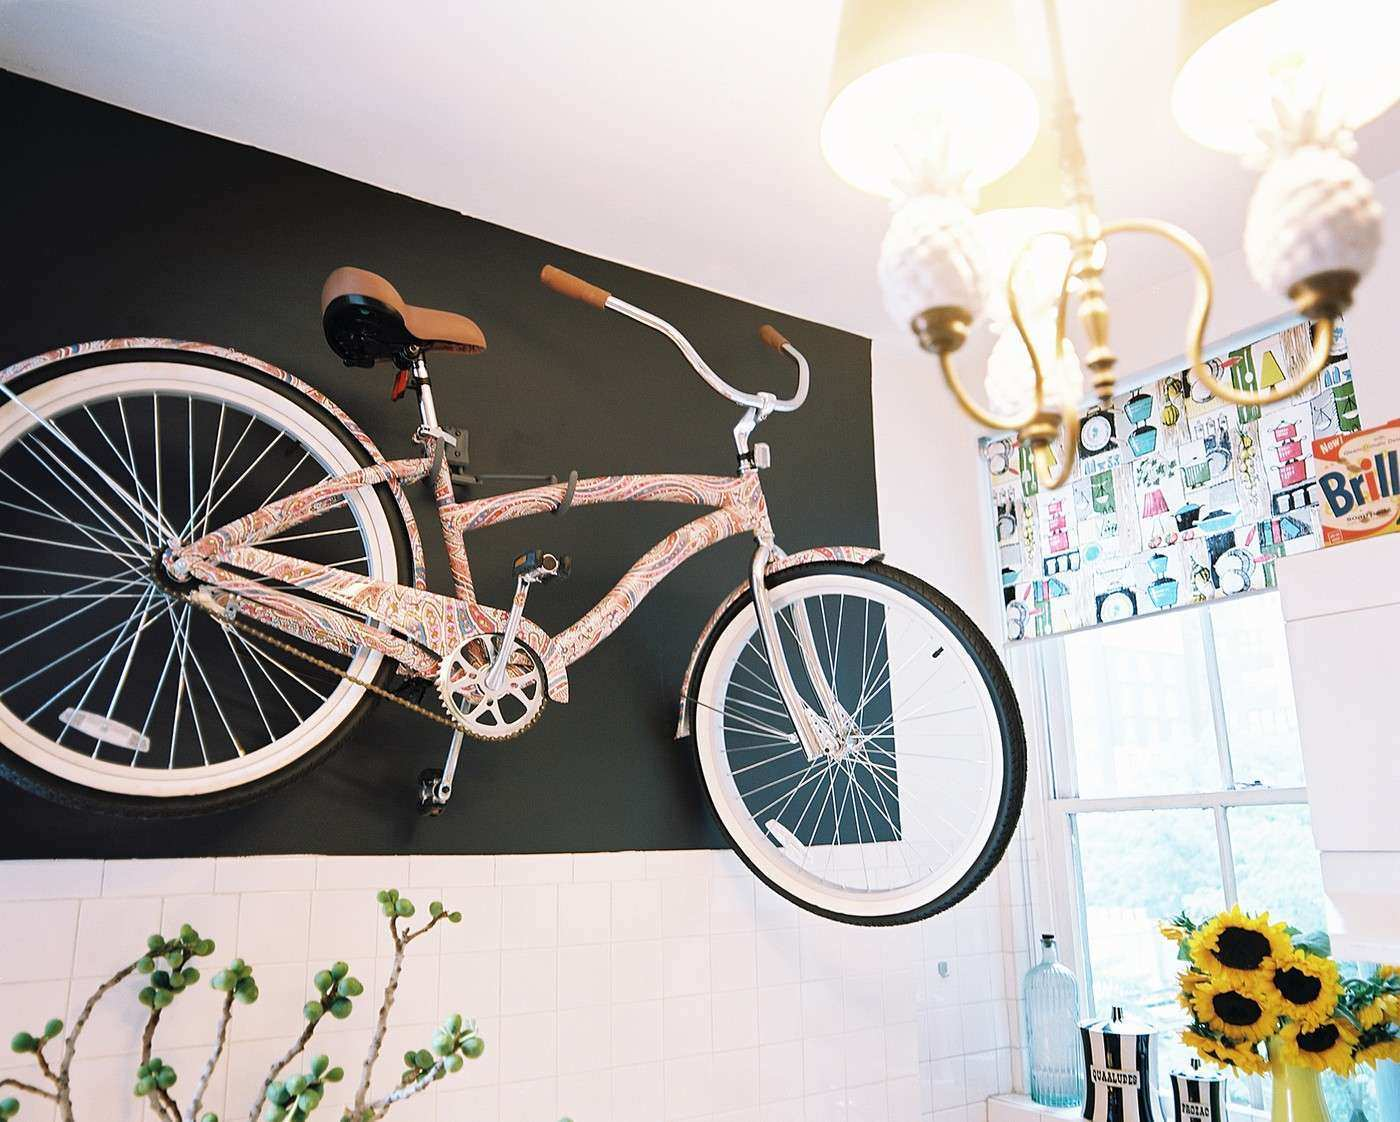 Bicycle Wall Art Unique Bicycle Storage S Design Ideas Remodel and Decor & Bicycle Wall Art Unique Bicycle Storage S Design Ideas Remodel and ...